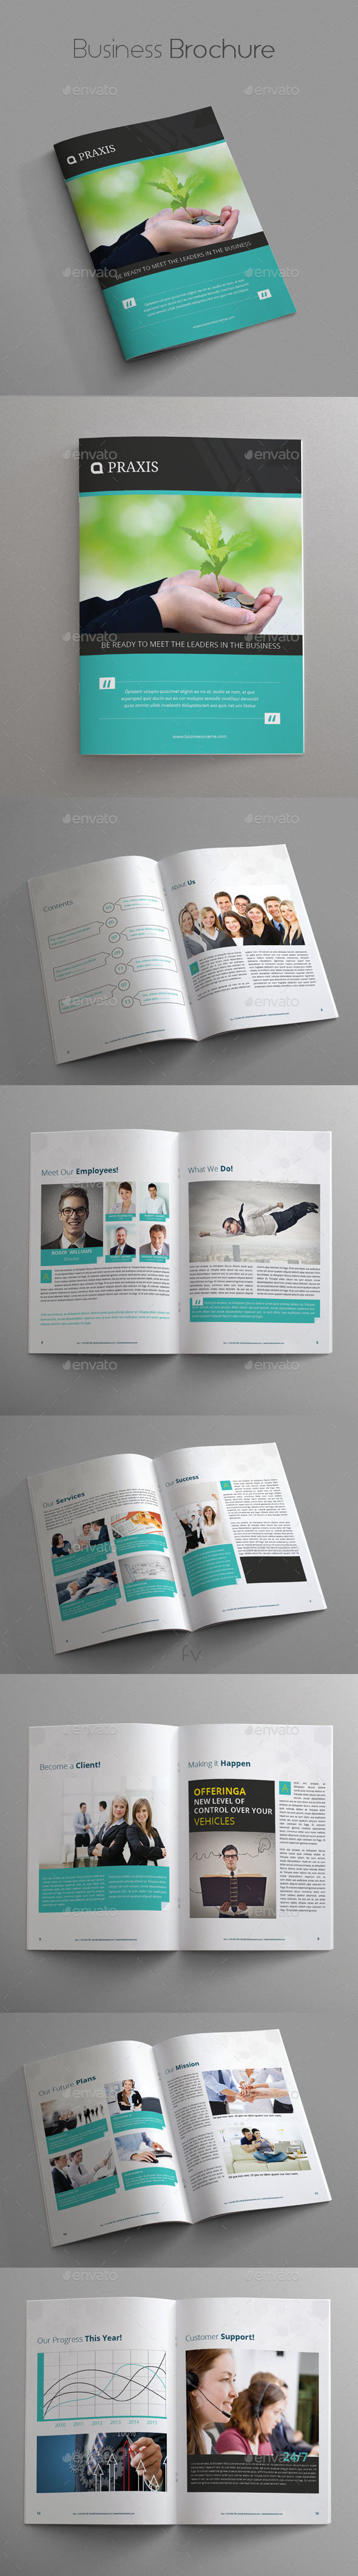 GraphicRiver Business Brochure 10017408